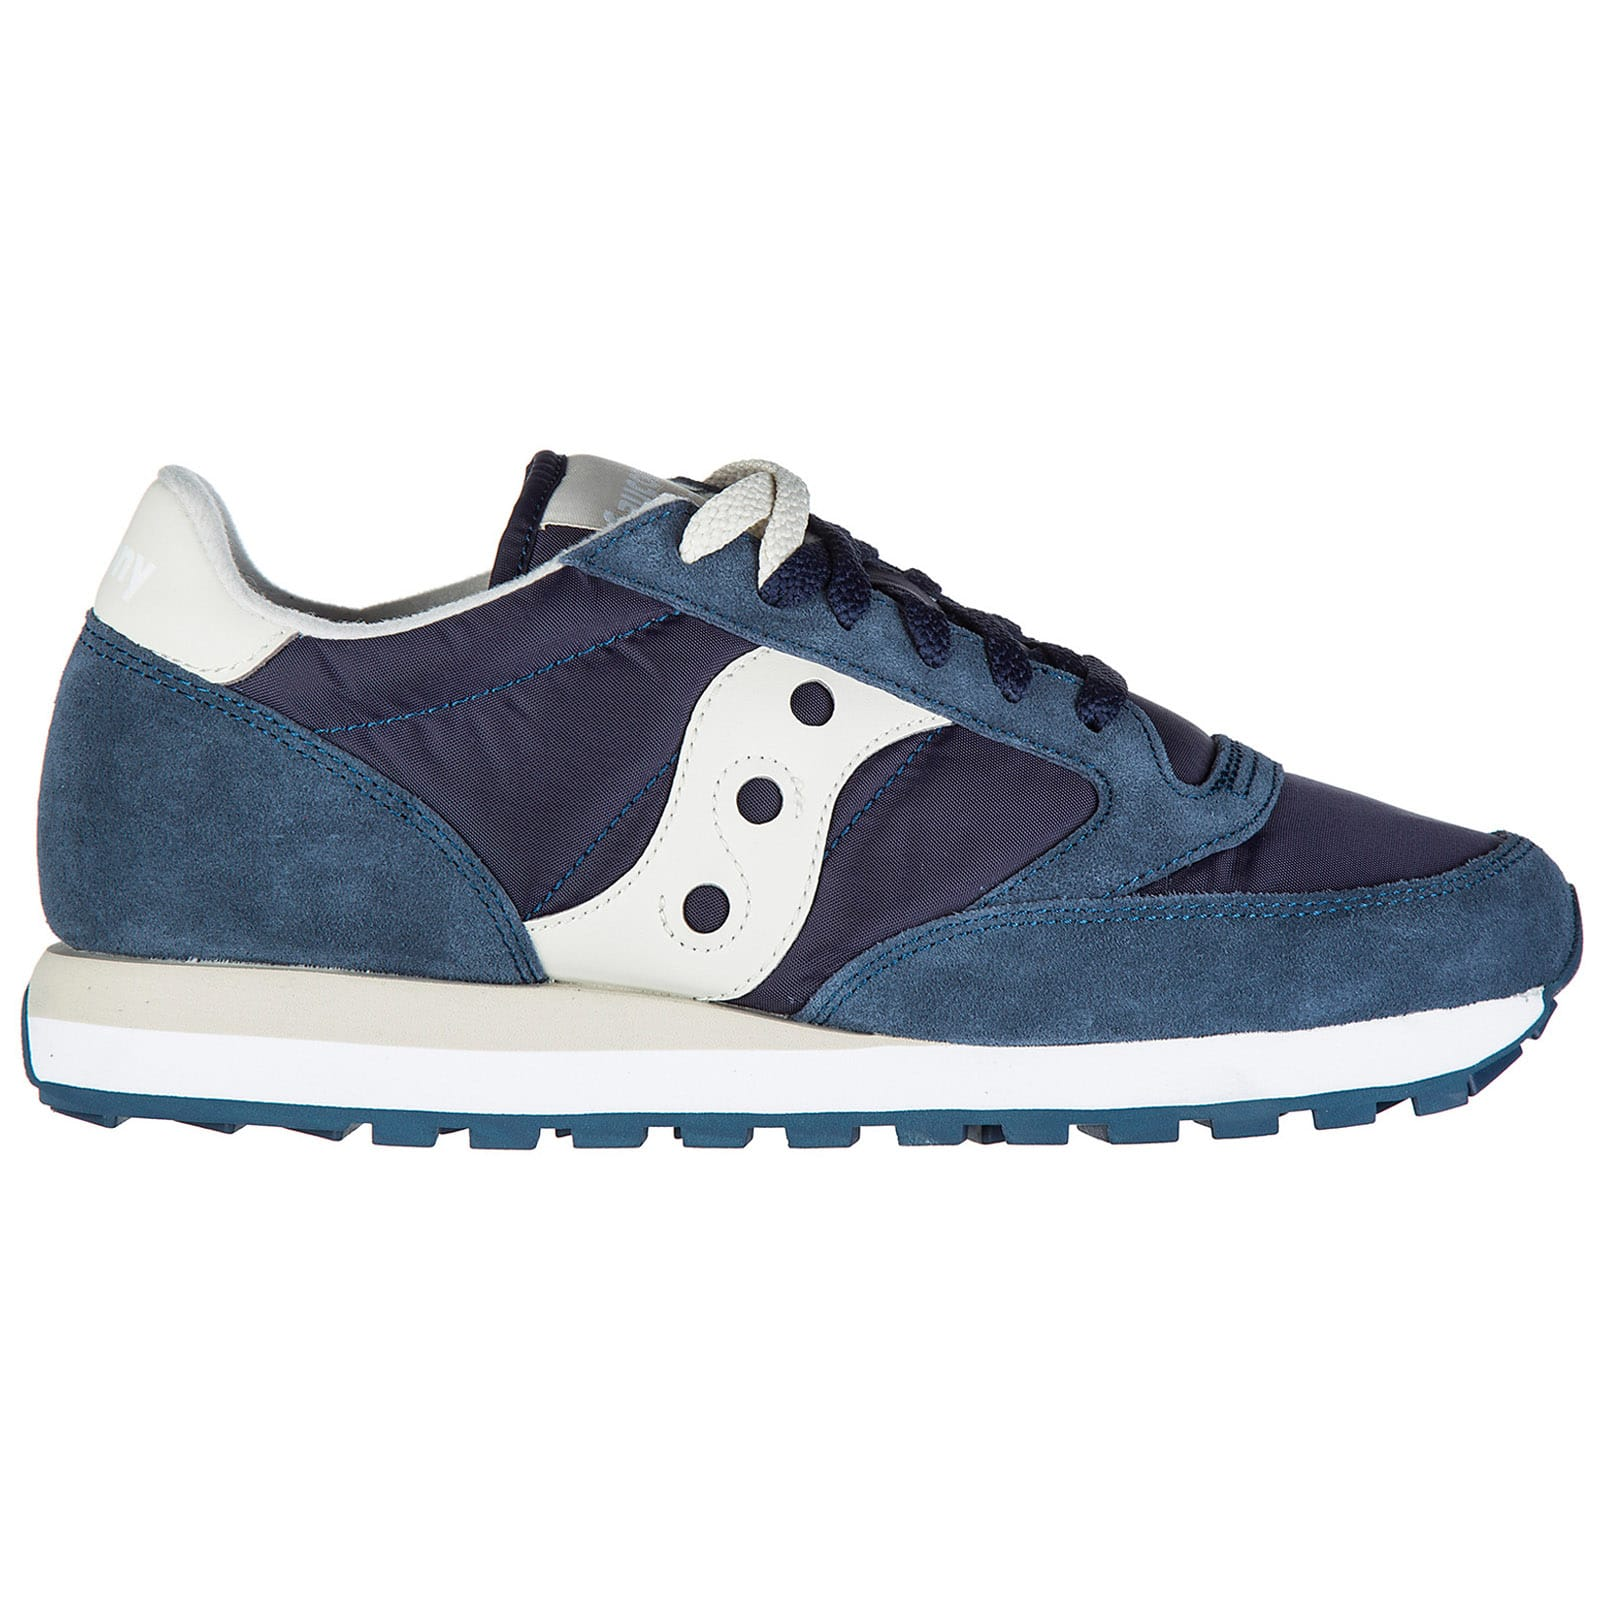 Saucony Shoes Suede Trainers Sneakers Jazz Original